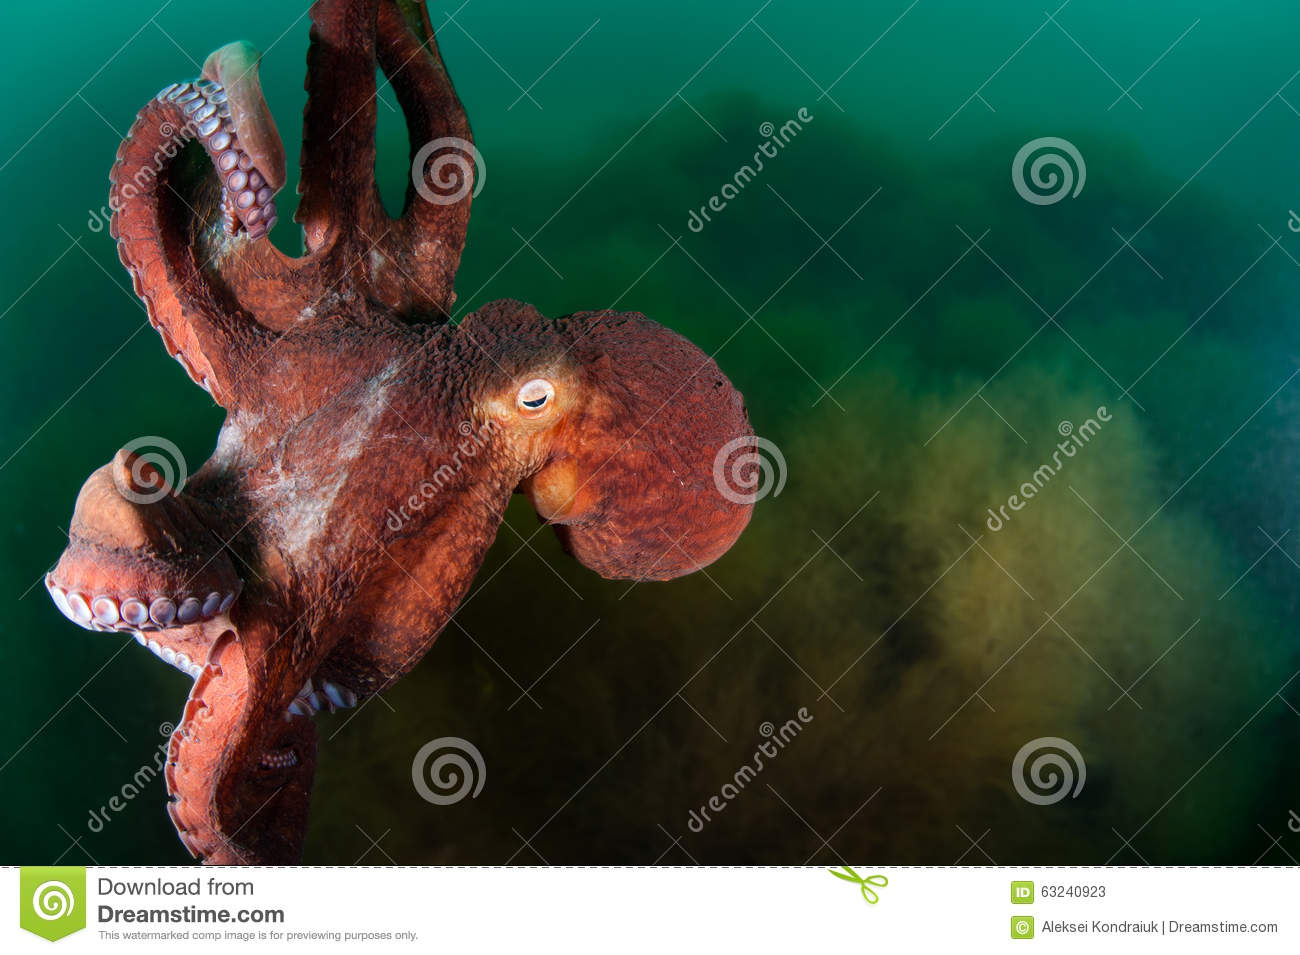 7x10 FT Octopus Vinyl Photography Background Backdrops,Giant Octopus with Long Legs Exotic Oceanic Animals Beast Wild Life Image Print Background for Selfie Birthday Party Pictures Photo Booth Shoot